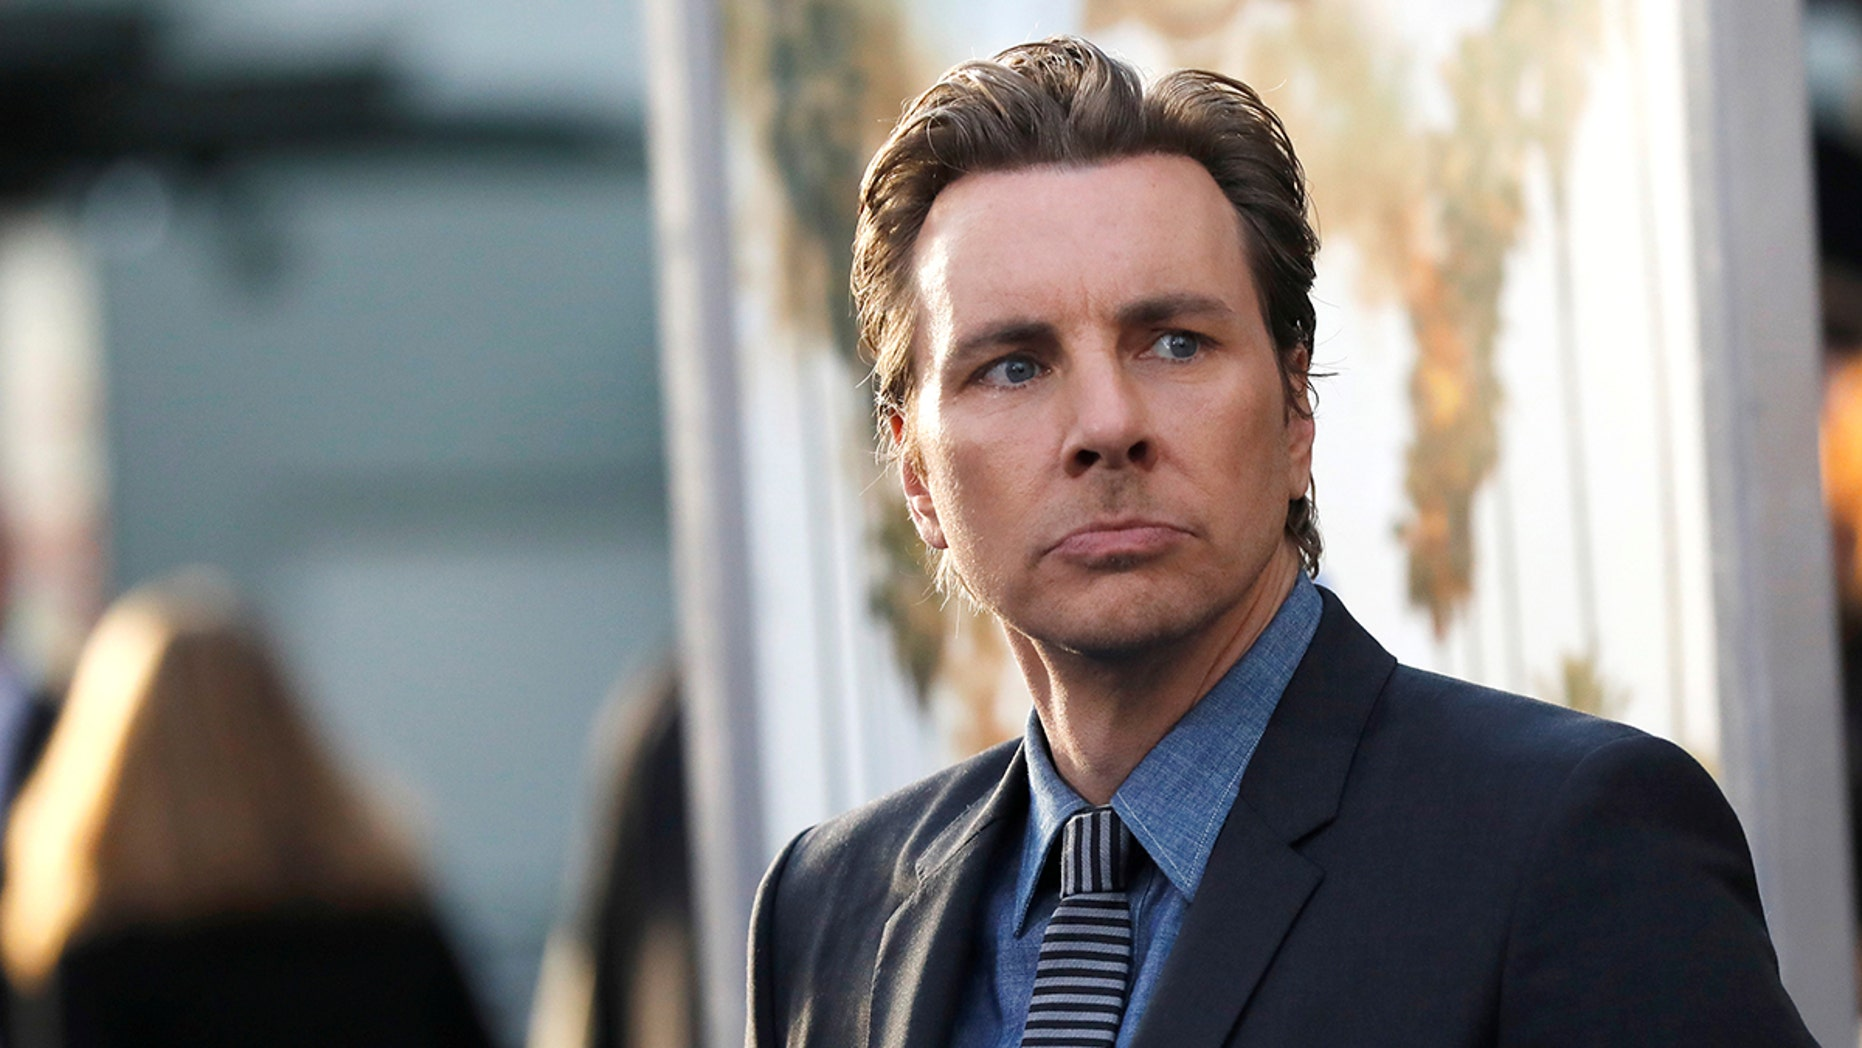 """Director and cast member Dax Shepard poses at the premiere of """"CHIPS"""" in Los Angeles, California U.S., March 20, 2017.   REUTERS/Mario Anzuoni - RC12D17200F0"""